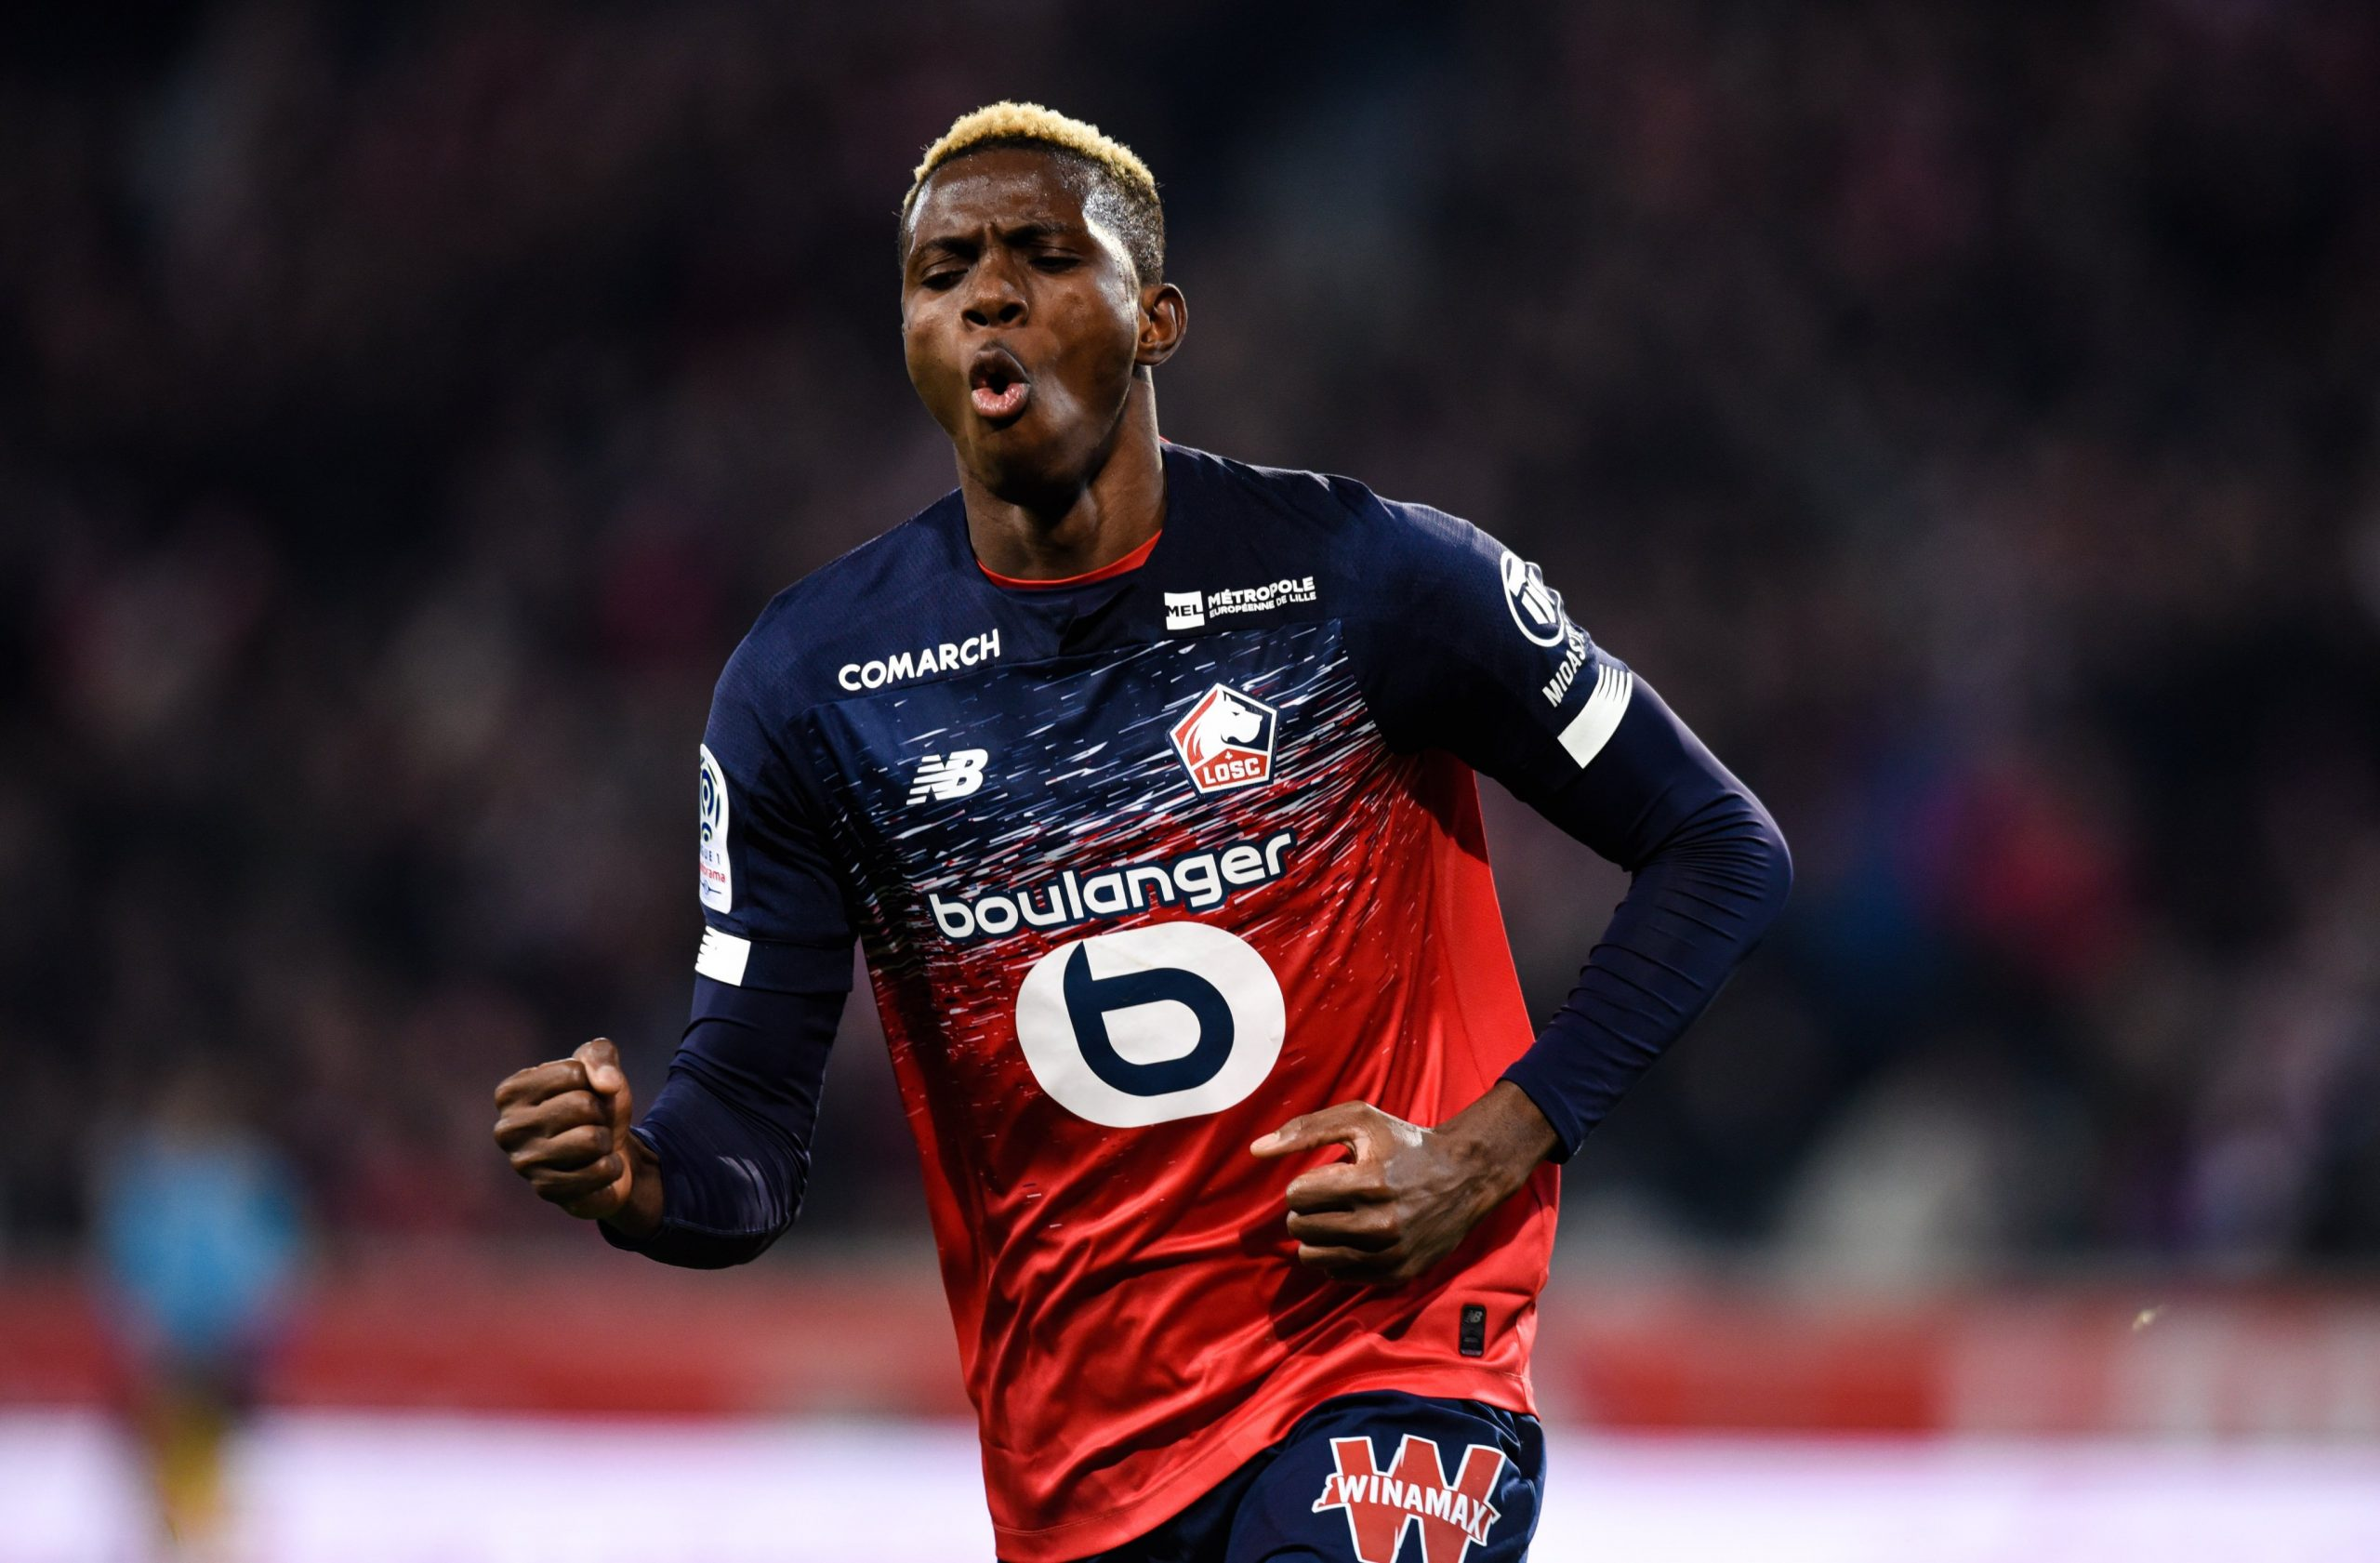 Osimhen Targets 10th Ligue 1 Goal For Lille